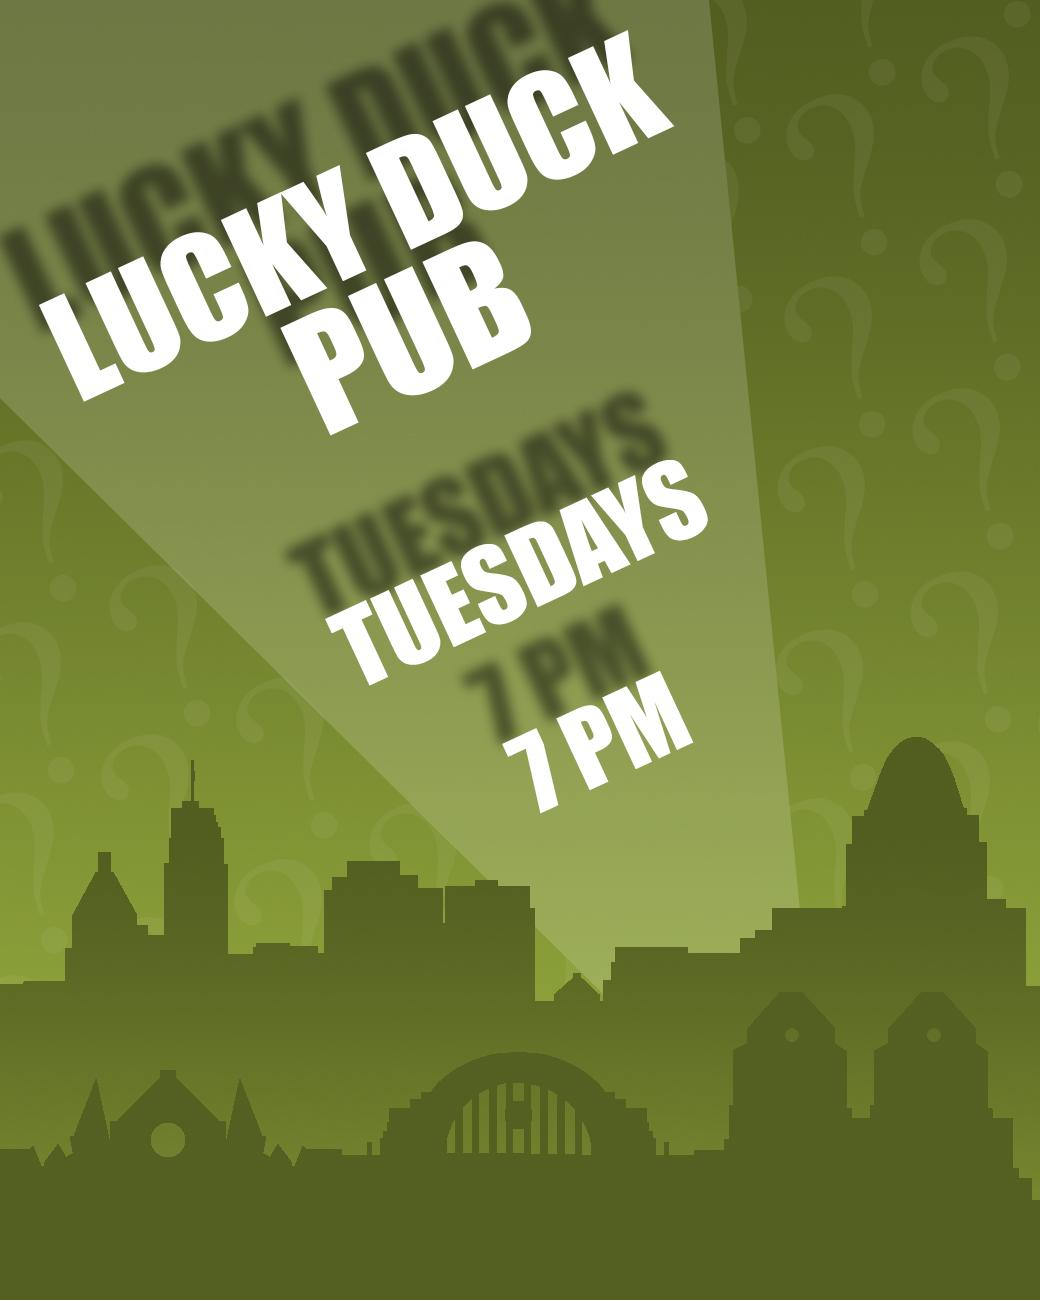 Lucky Duck Pub has trivia every Tuesday starting at 7 PM. ADDRESS: 6072 Limaburg Rd (41005) / Image: Phil Armstrong, Cincinnati Refined // Published: 8.30.17